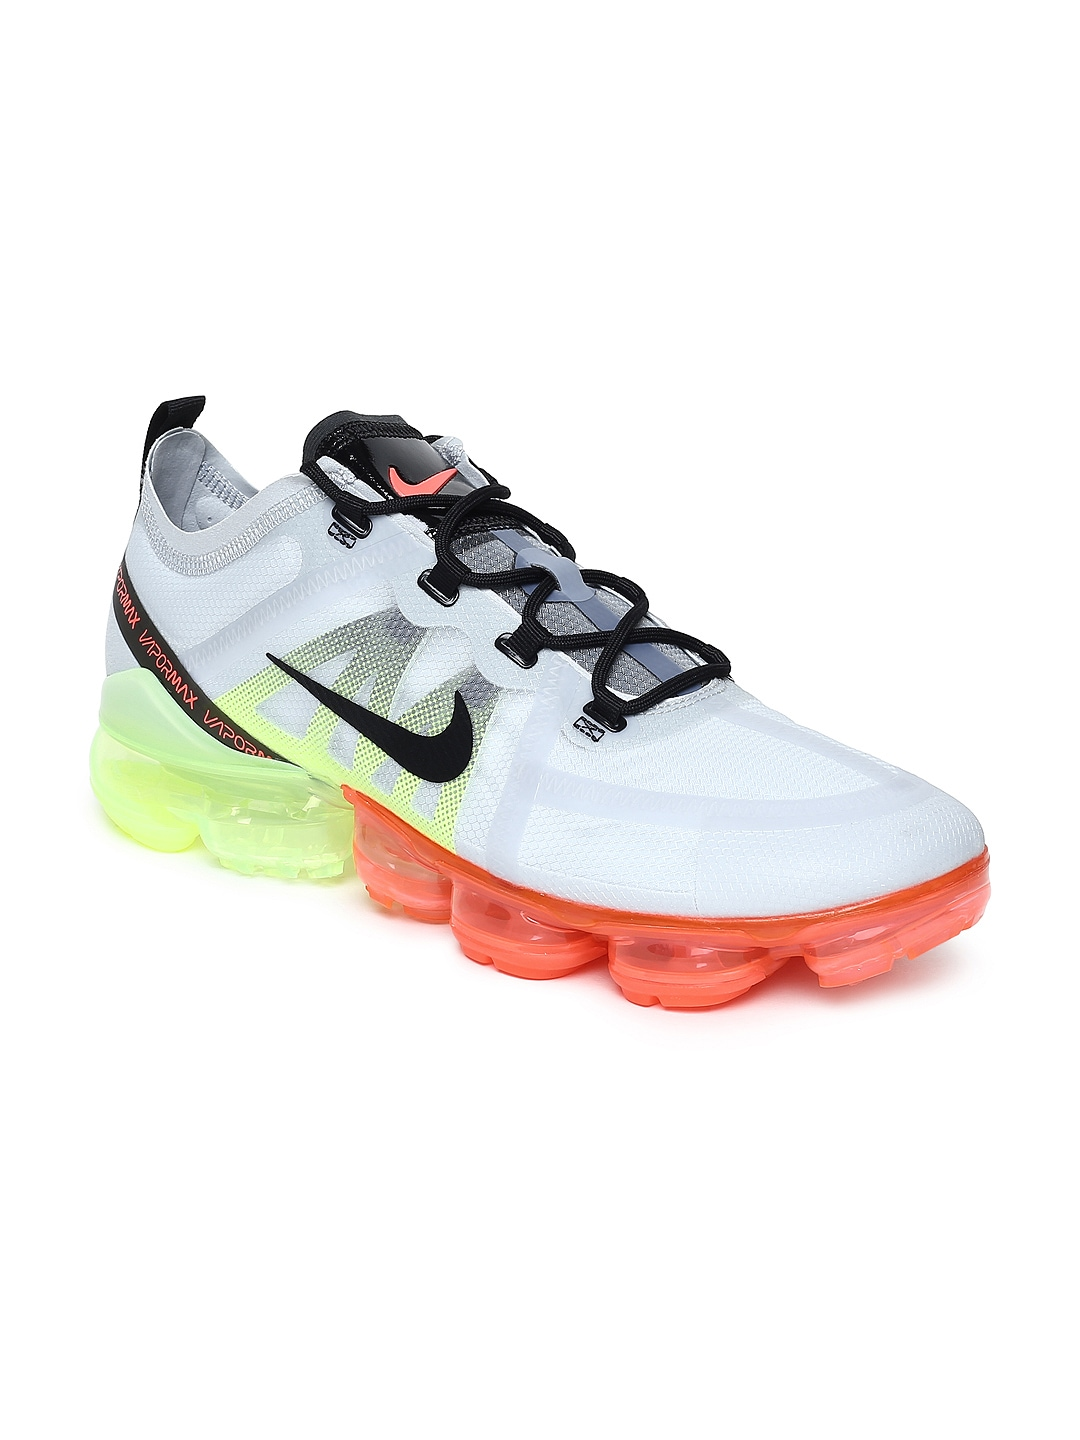 94e28e711747a Vapormax - Buy Vapormax online in India